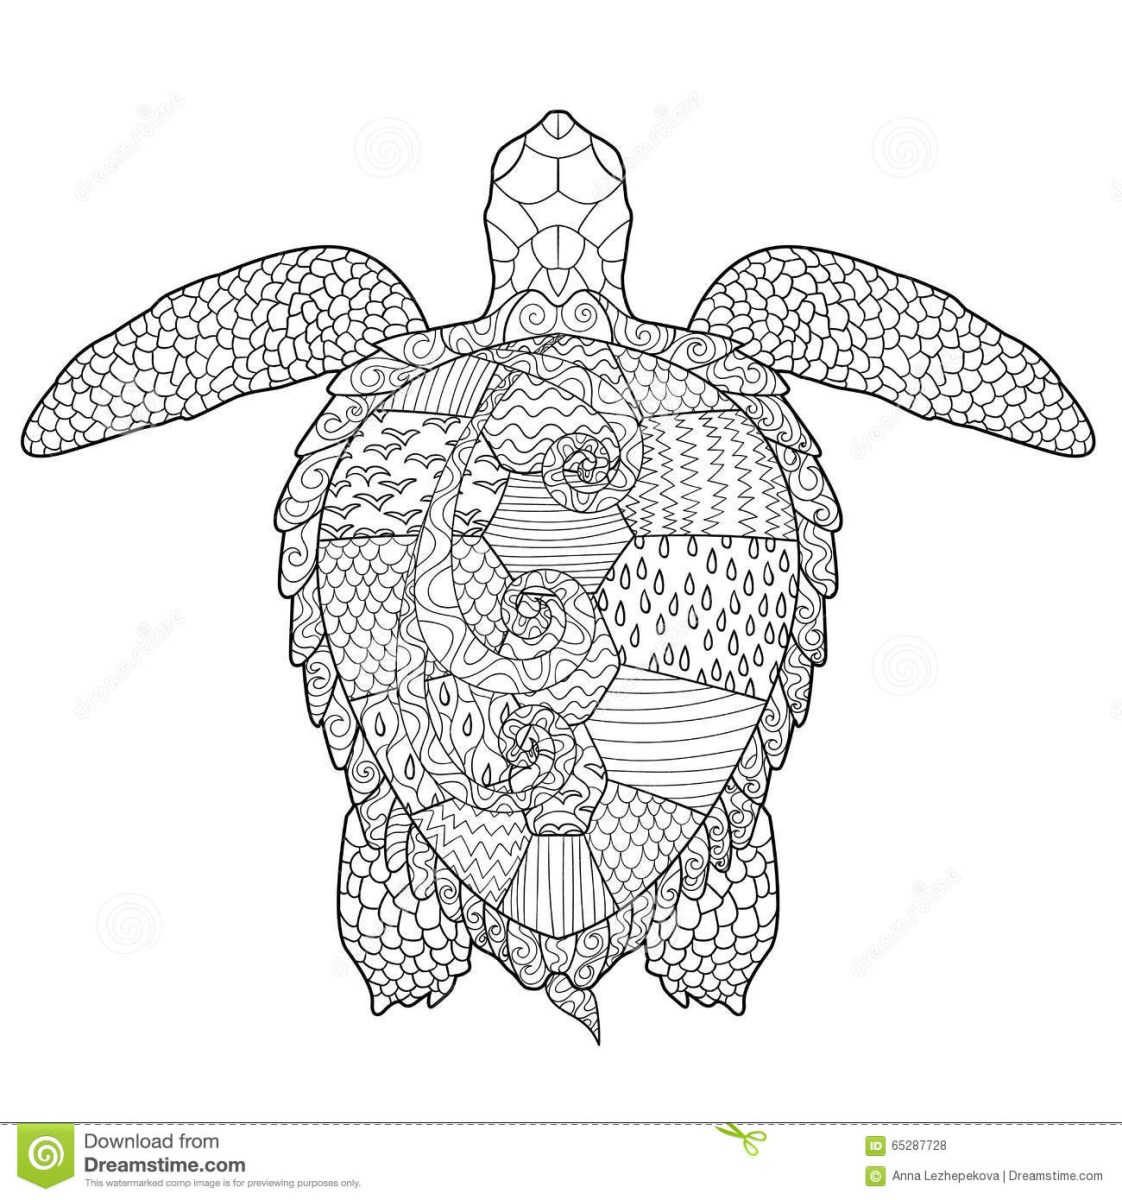 Sea Turtle Coloring Page Sea Turtle Adult Coloring Pages